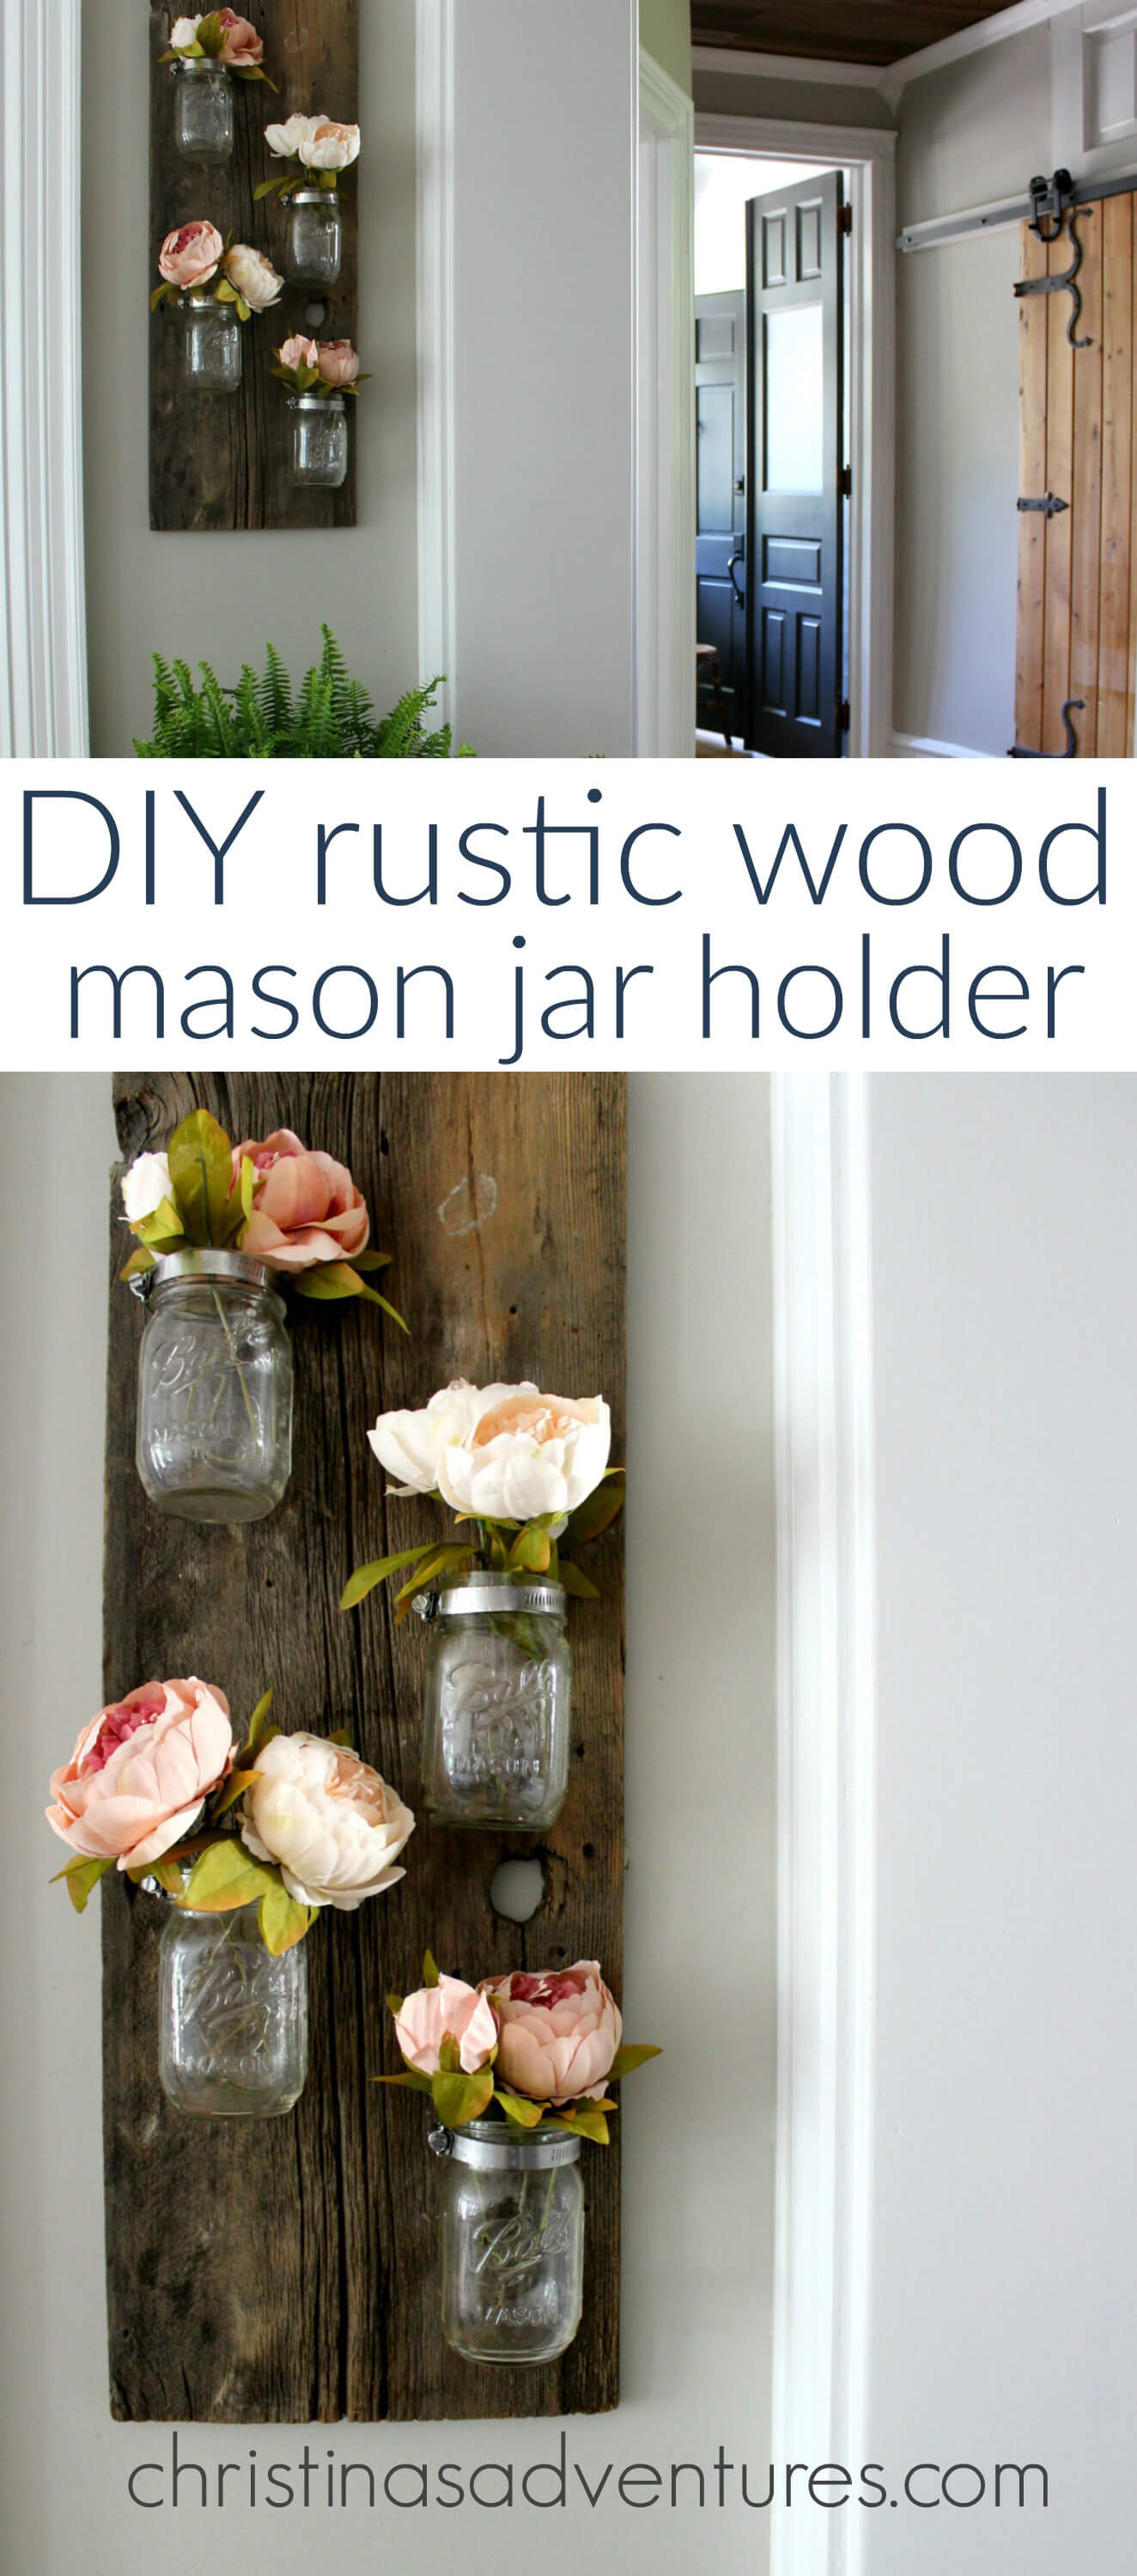 24 Best Mason Jar Wall Decor Ideas And Designs For 2020